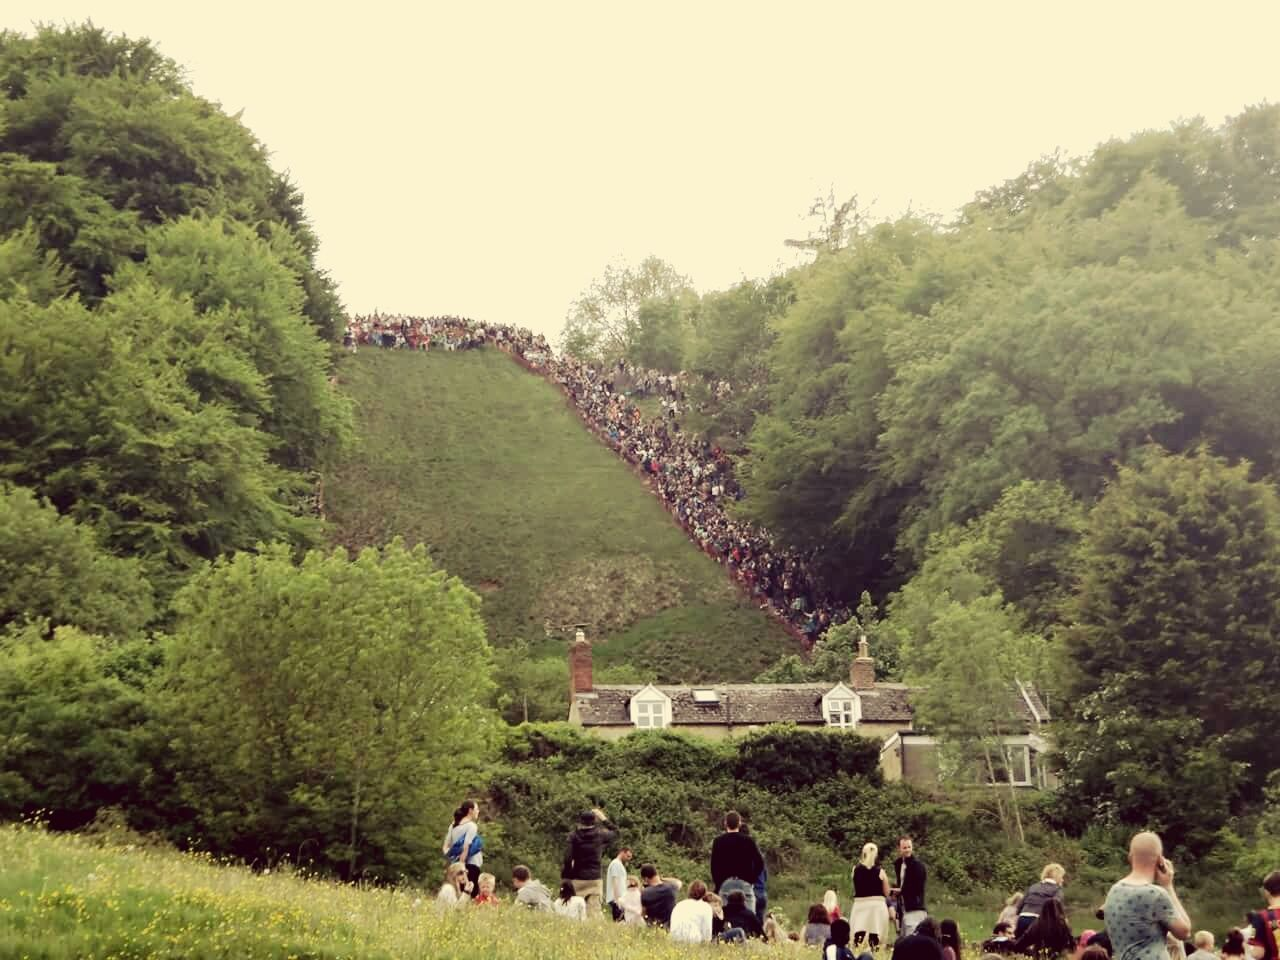 Gloucester Cheese Rolling crazy Crazy Cheese Danger Sport Extreme Weird Wacky Wonderful Gloucestershire England